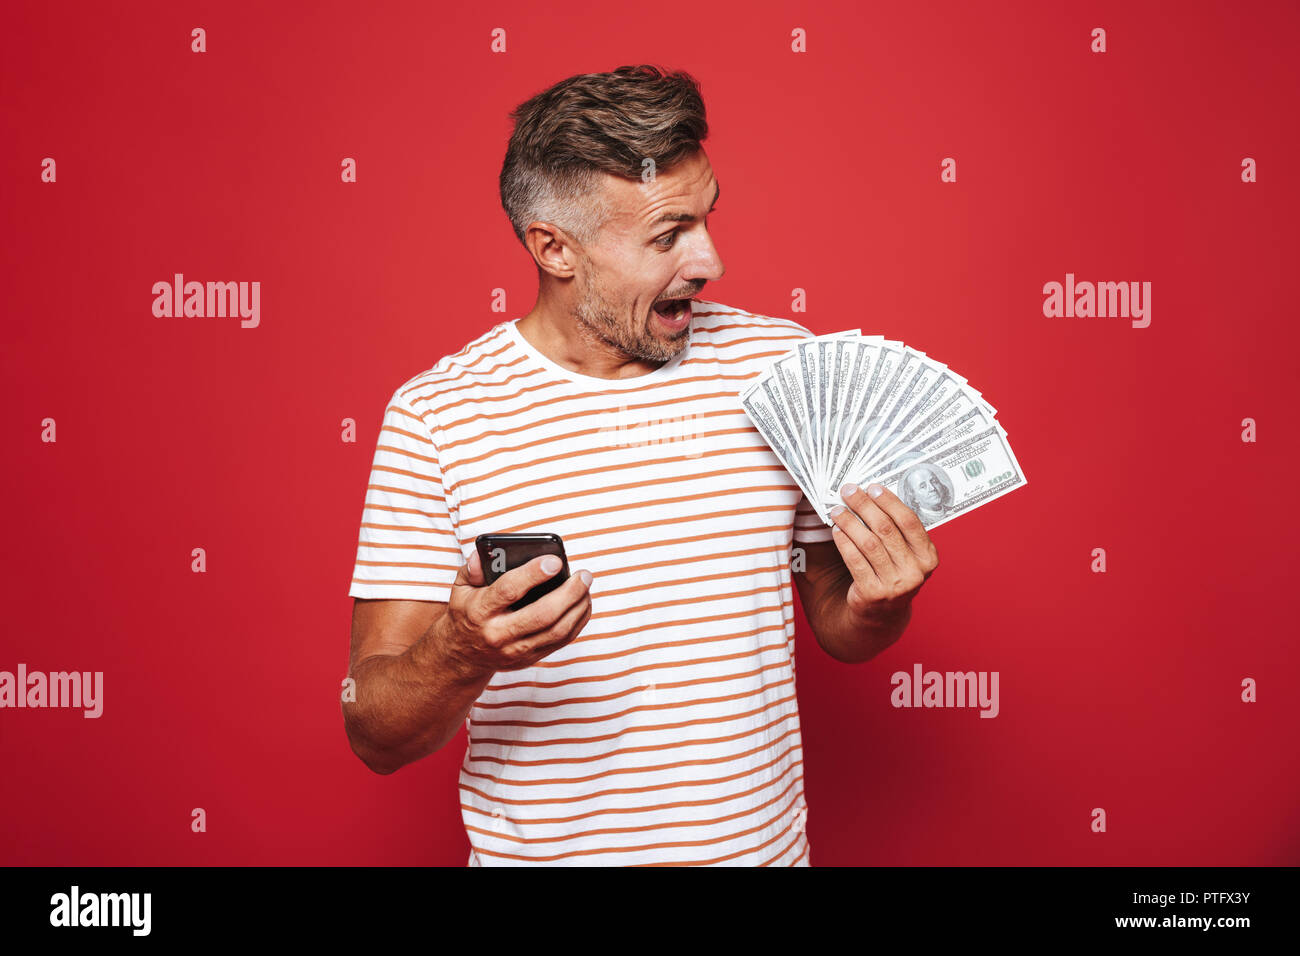 Portrait of a happy man standing over red background, using mobile phone, showing money banknotes Stock Photo